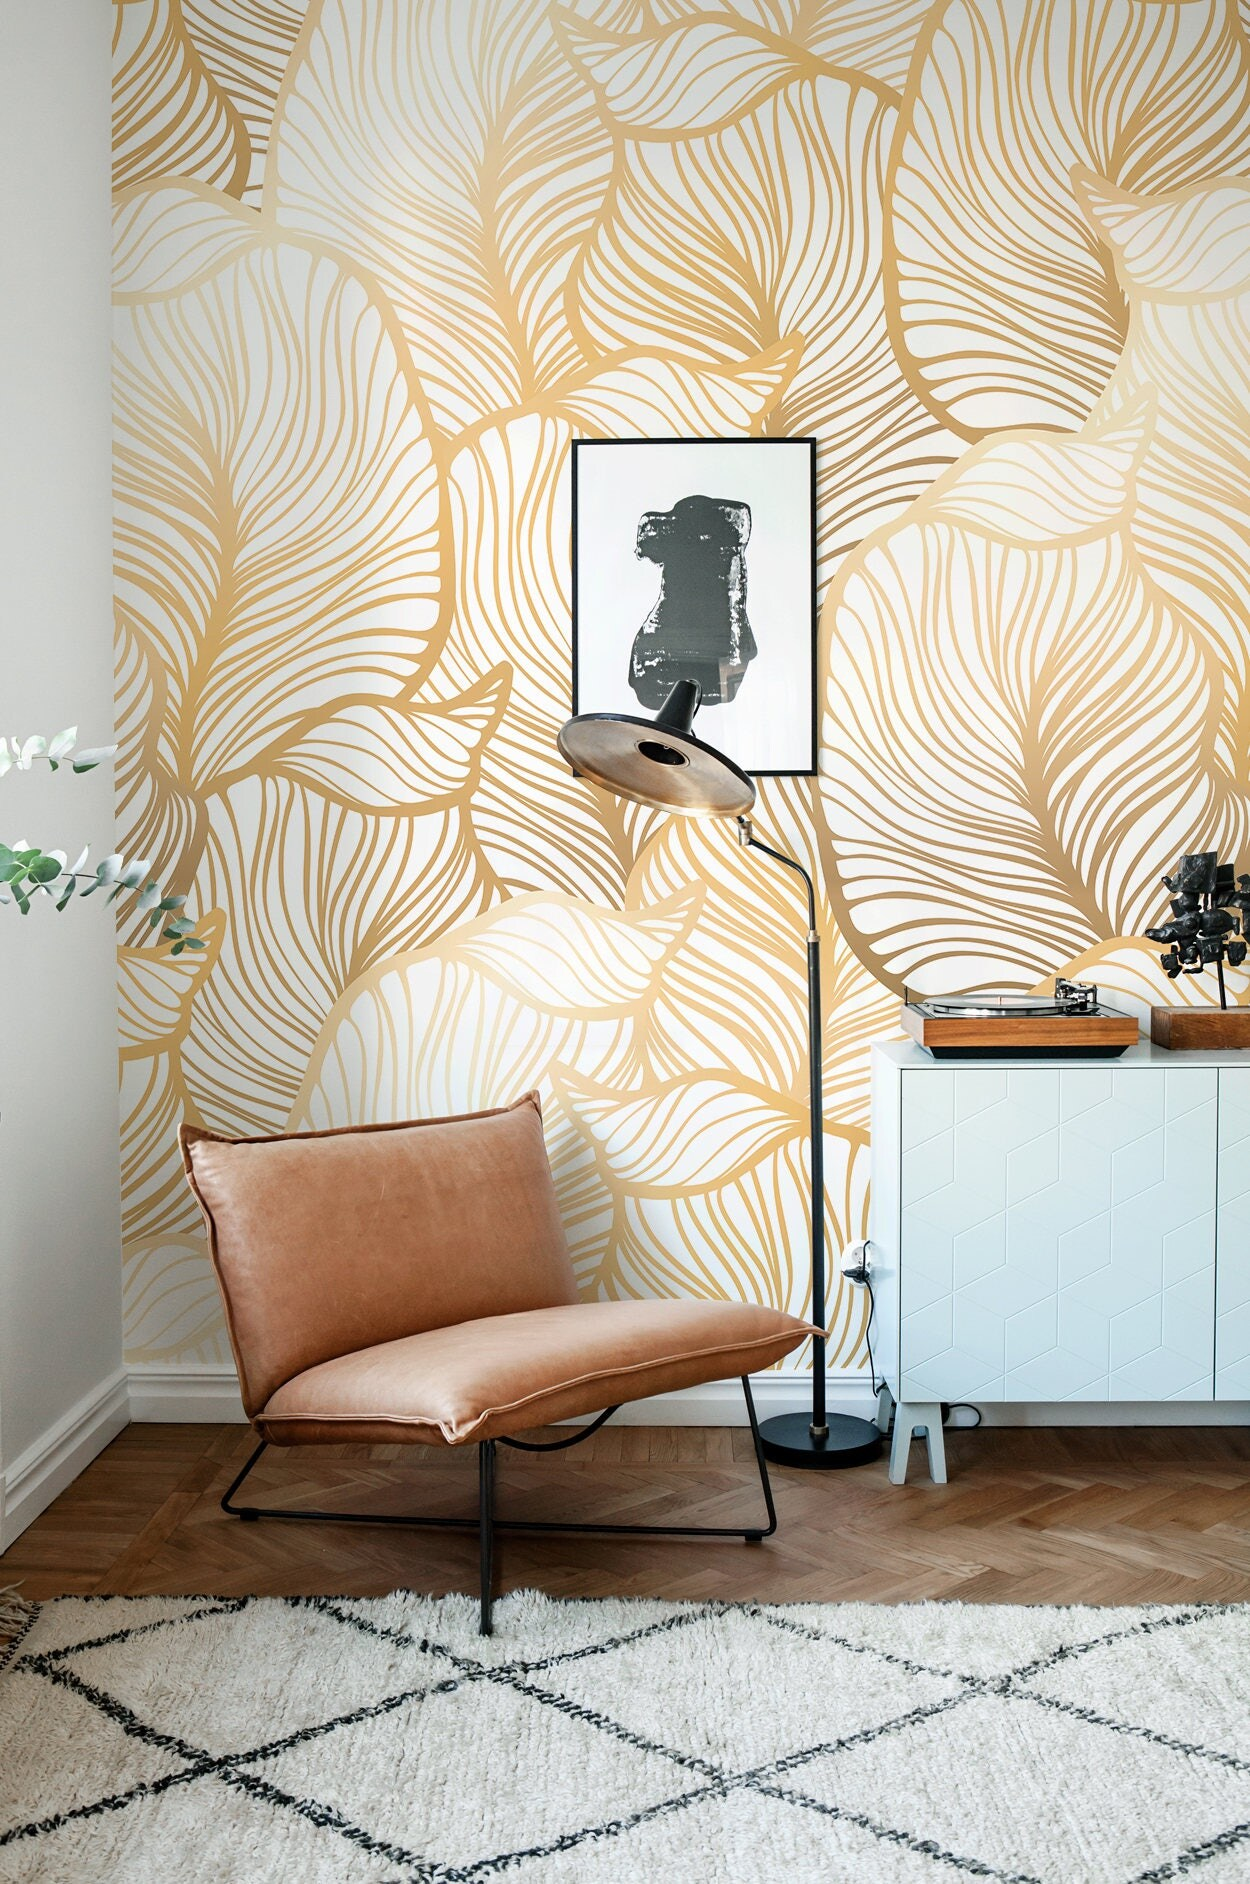 Solid Gold Leaf Wallpaper, Exotic Leaves Wallpaper, Large Leaf Wall Mural,  Home Décor Part 59